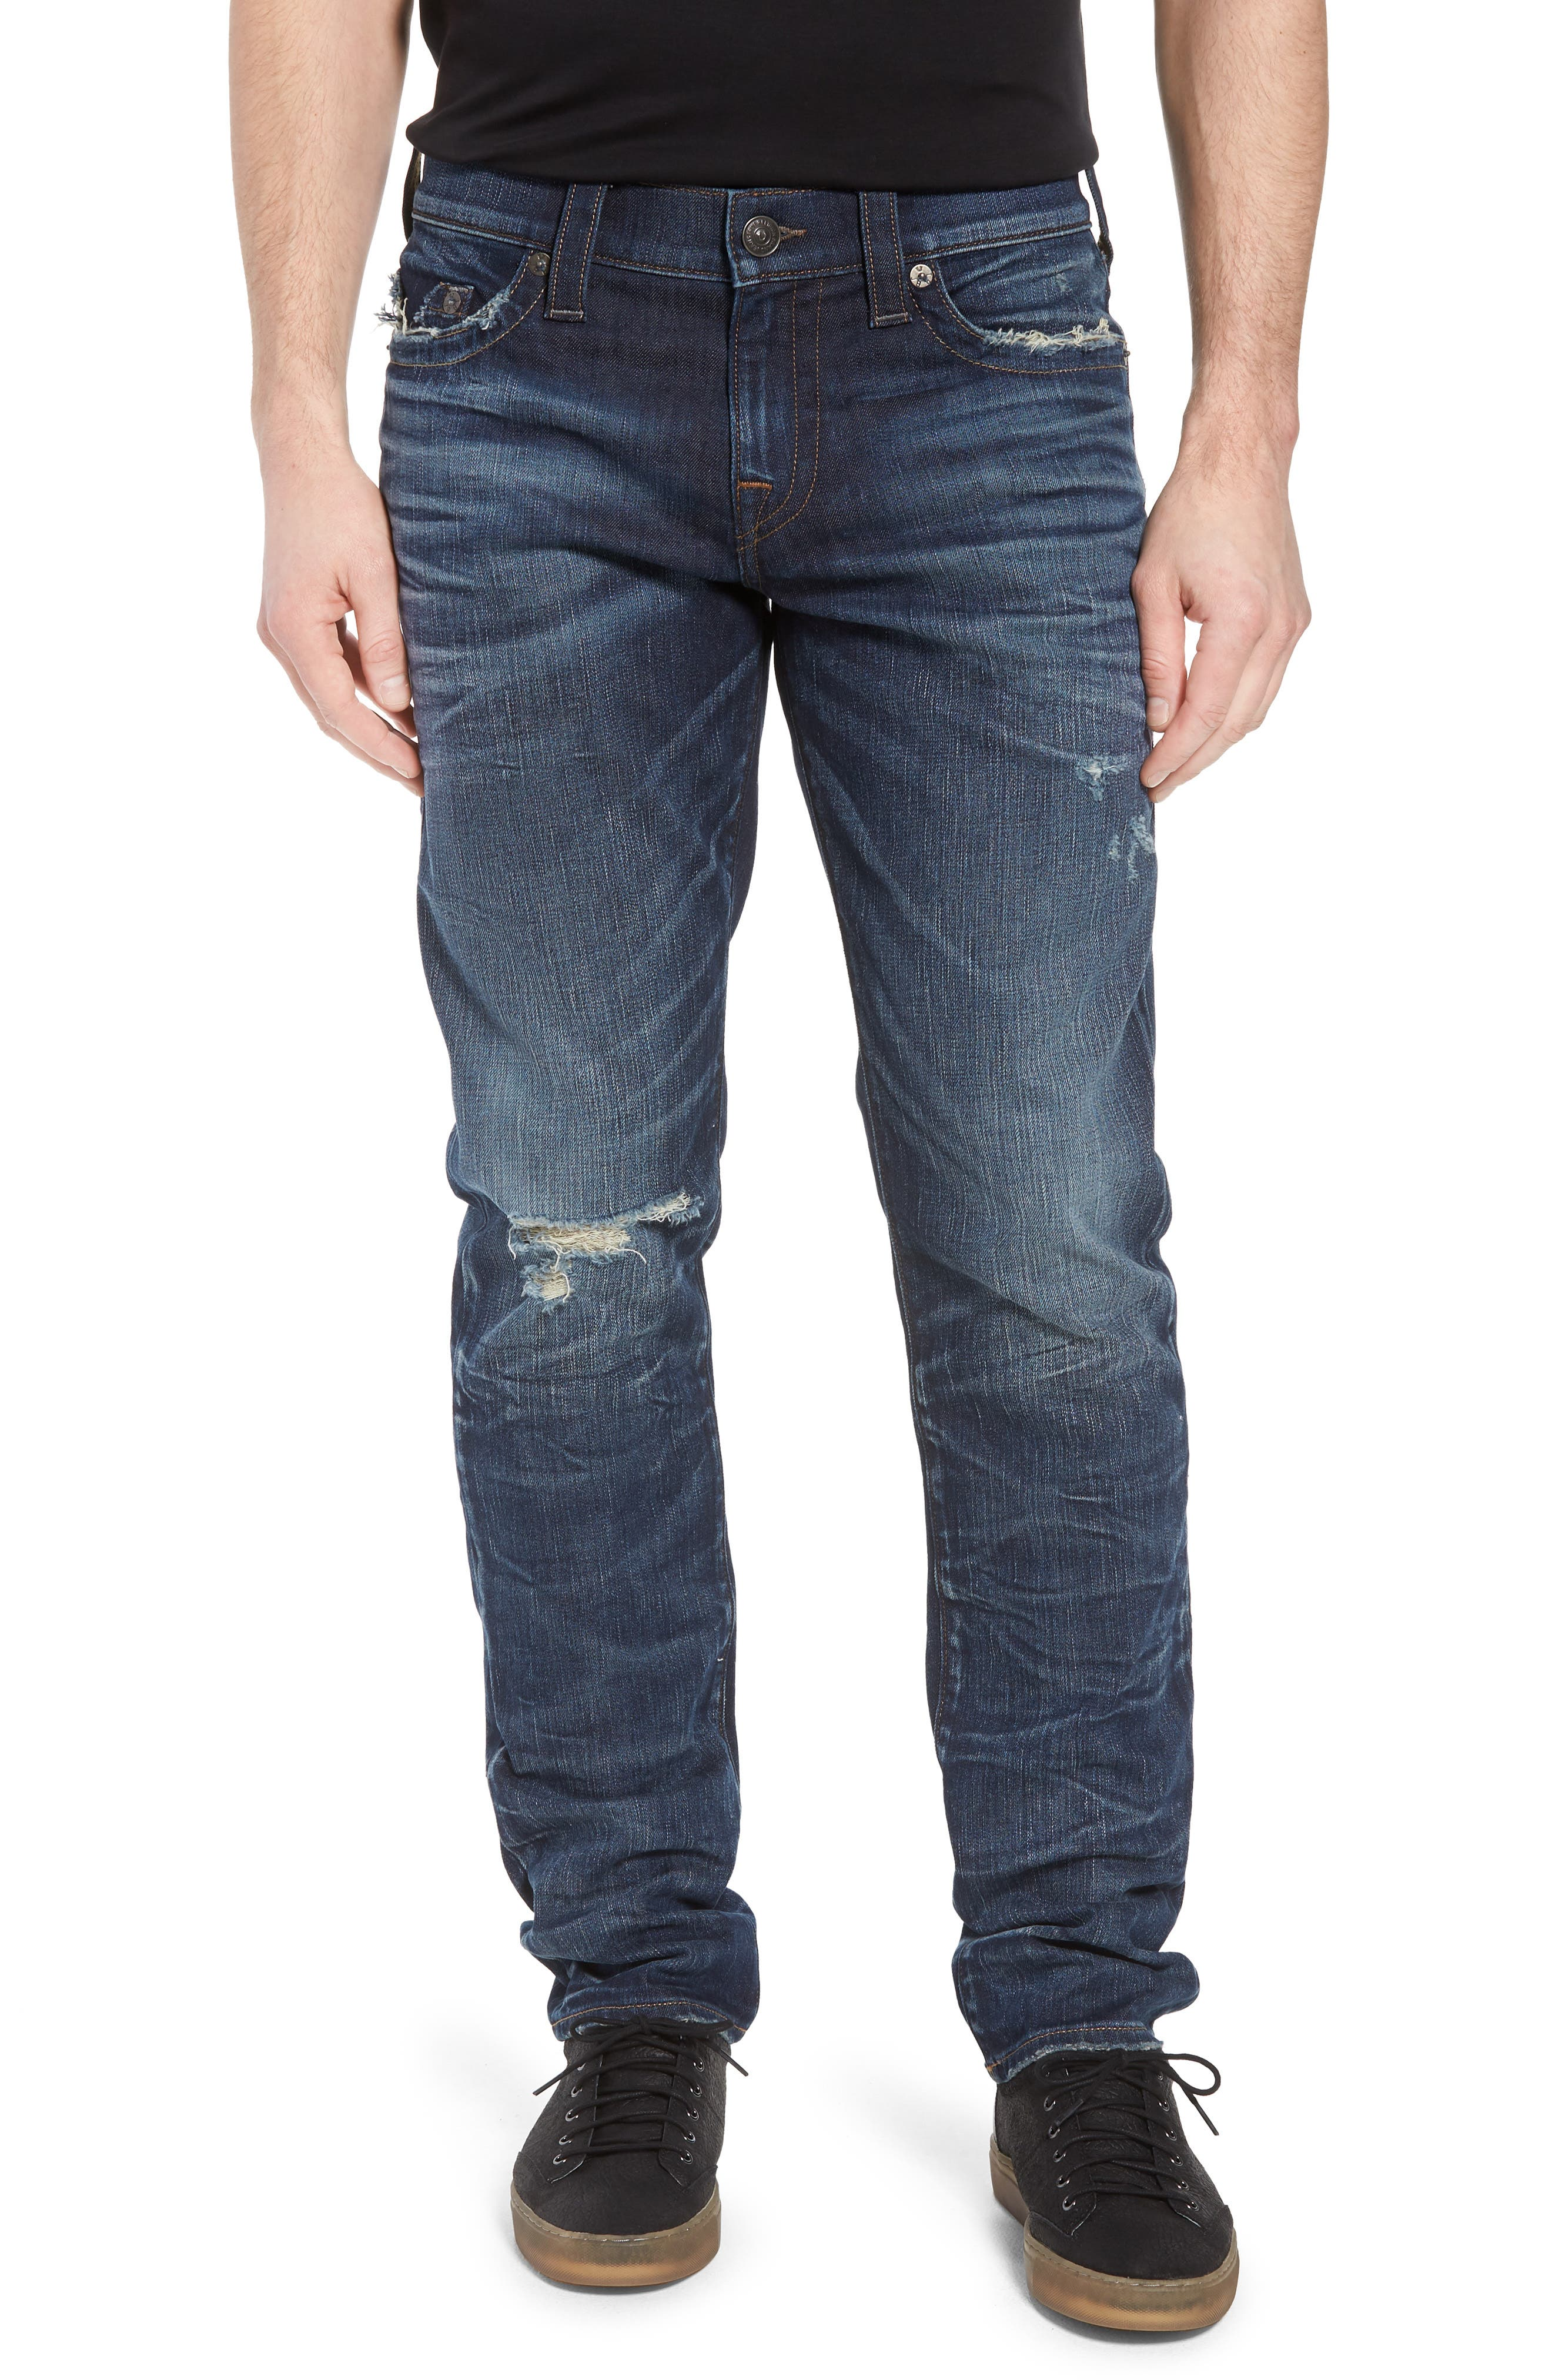 Geno Straight Leg Jeans,                         Main,                         color, Combat Blue